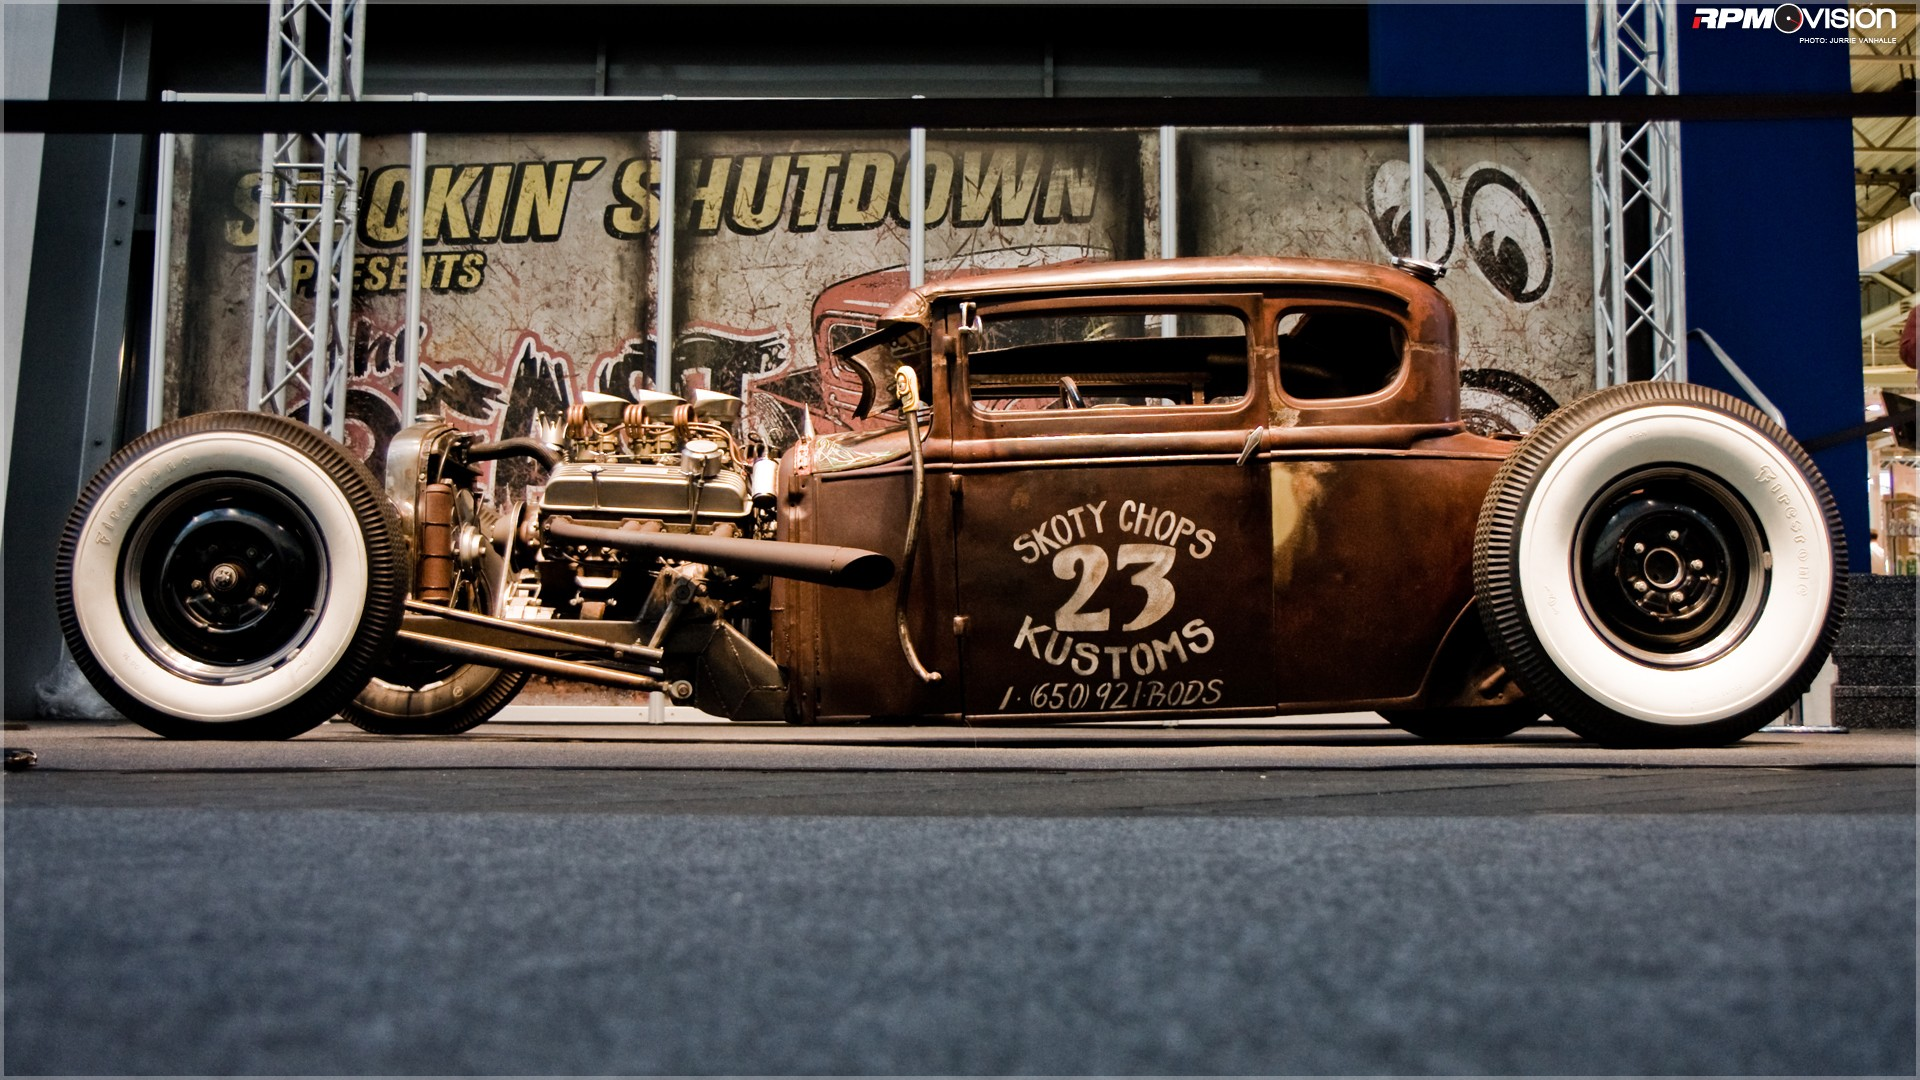 Skoty Chops Customs Hot Rod shot at a low angle